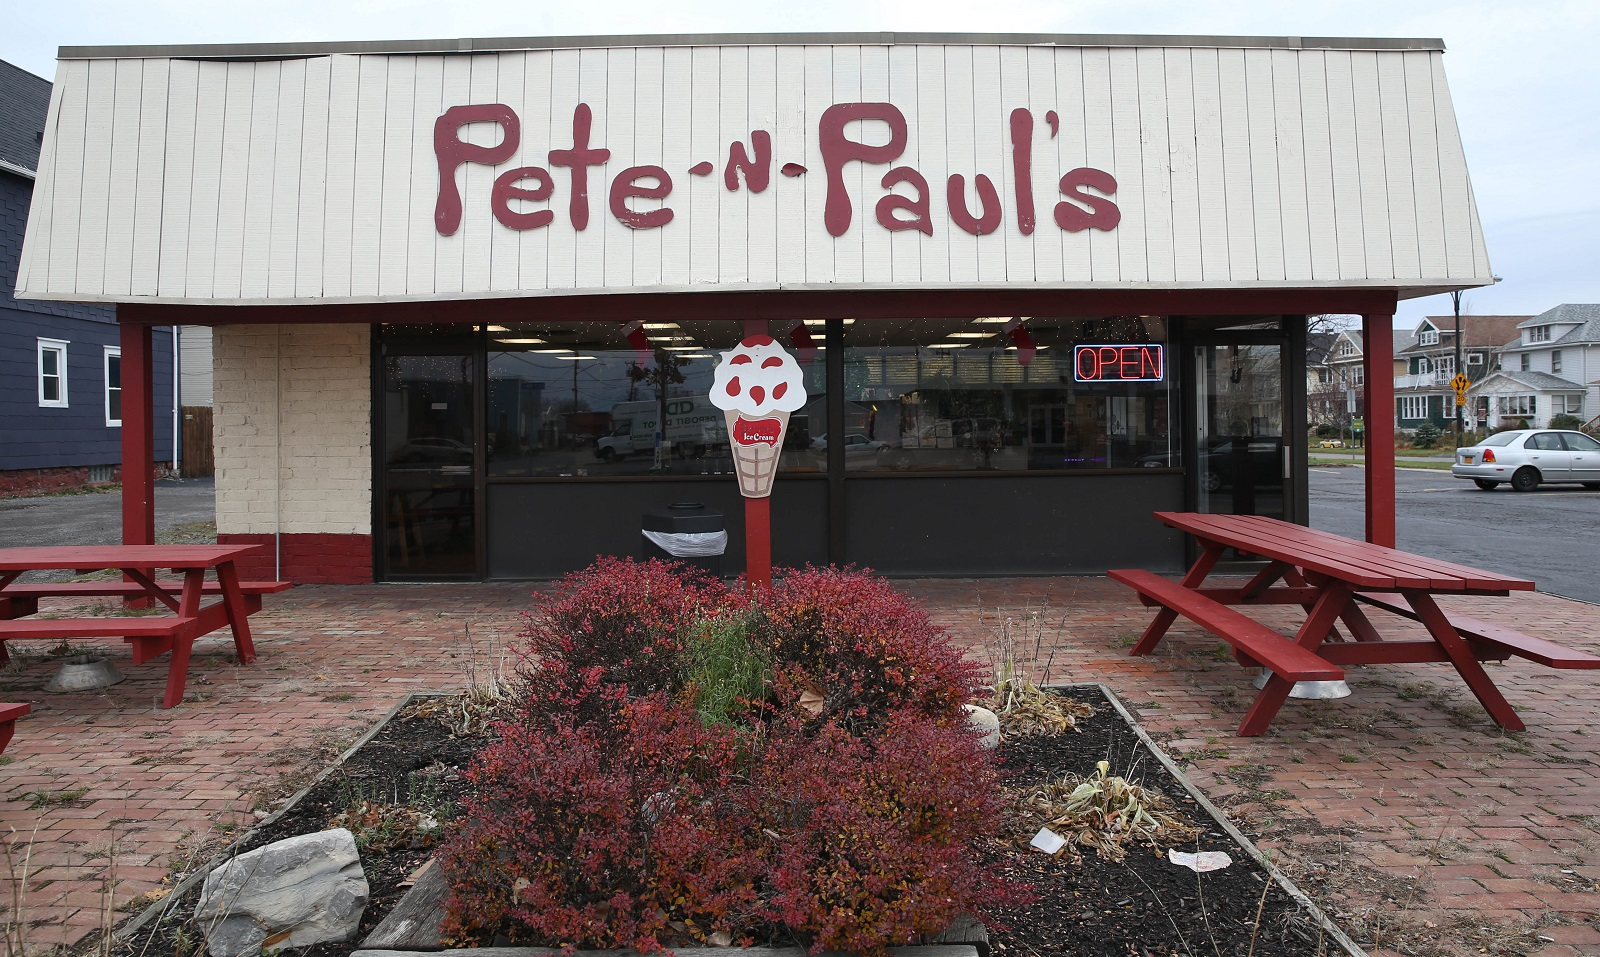 Pete-N-Paul's has been at 2124 South Park Ave. for the past 22 years. (Sharon Cantillon/Buffalo News)